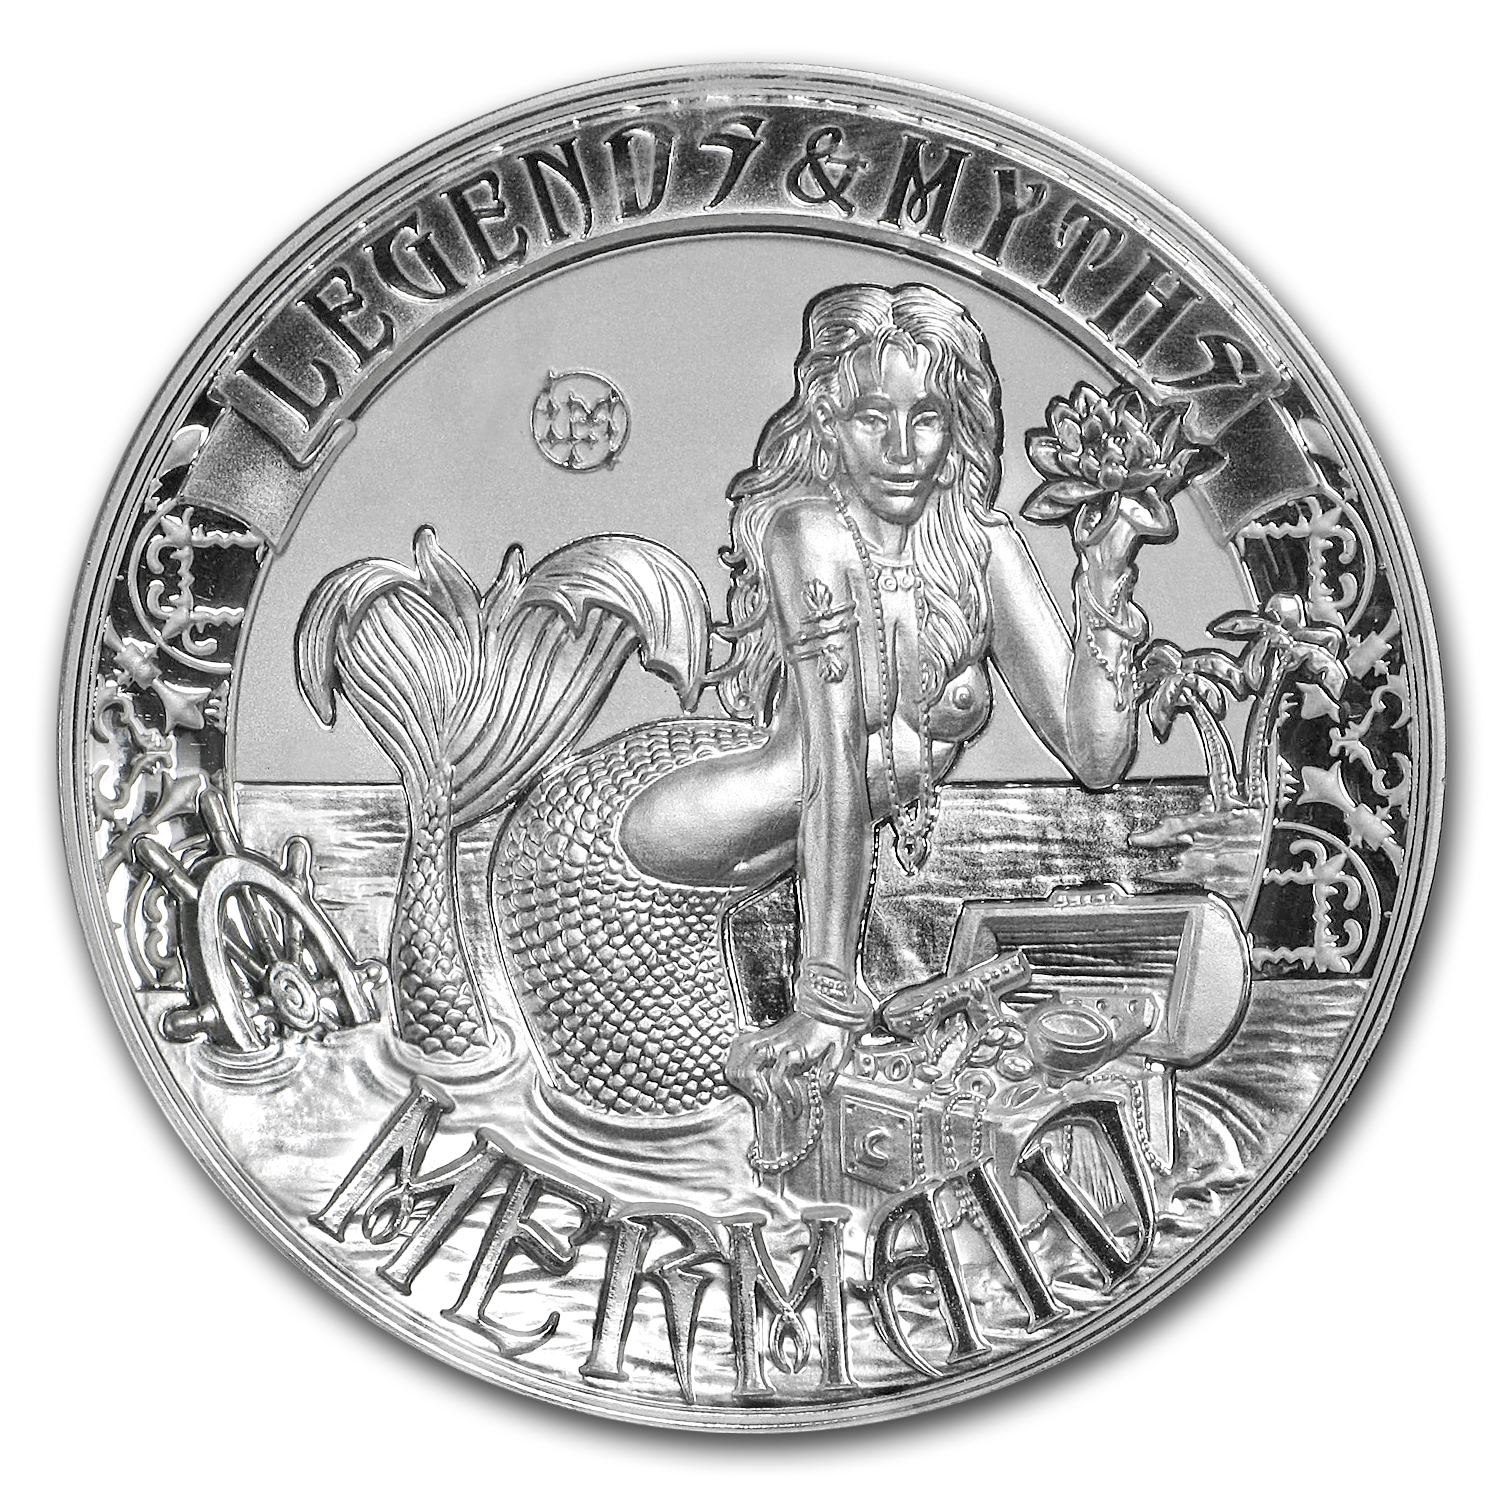 2016 Solomon Islands 2 oz Silver Rev Prf Legends & Myths: Mermaid